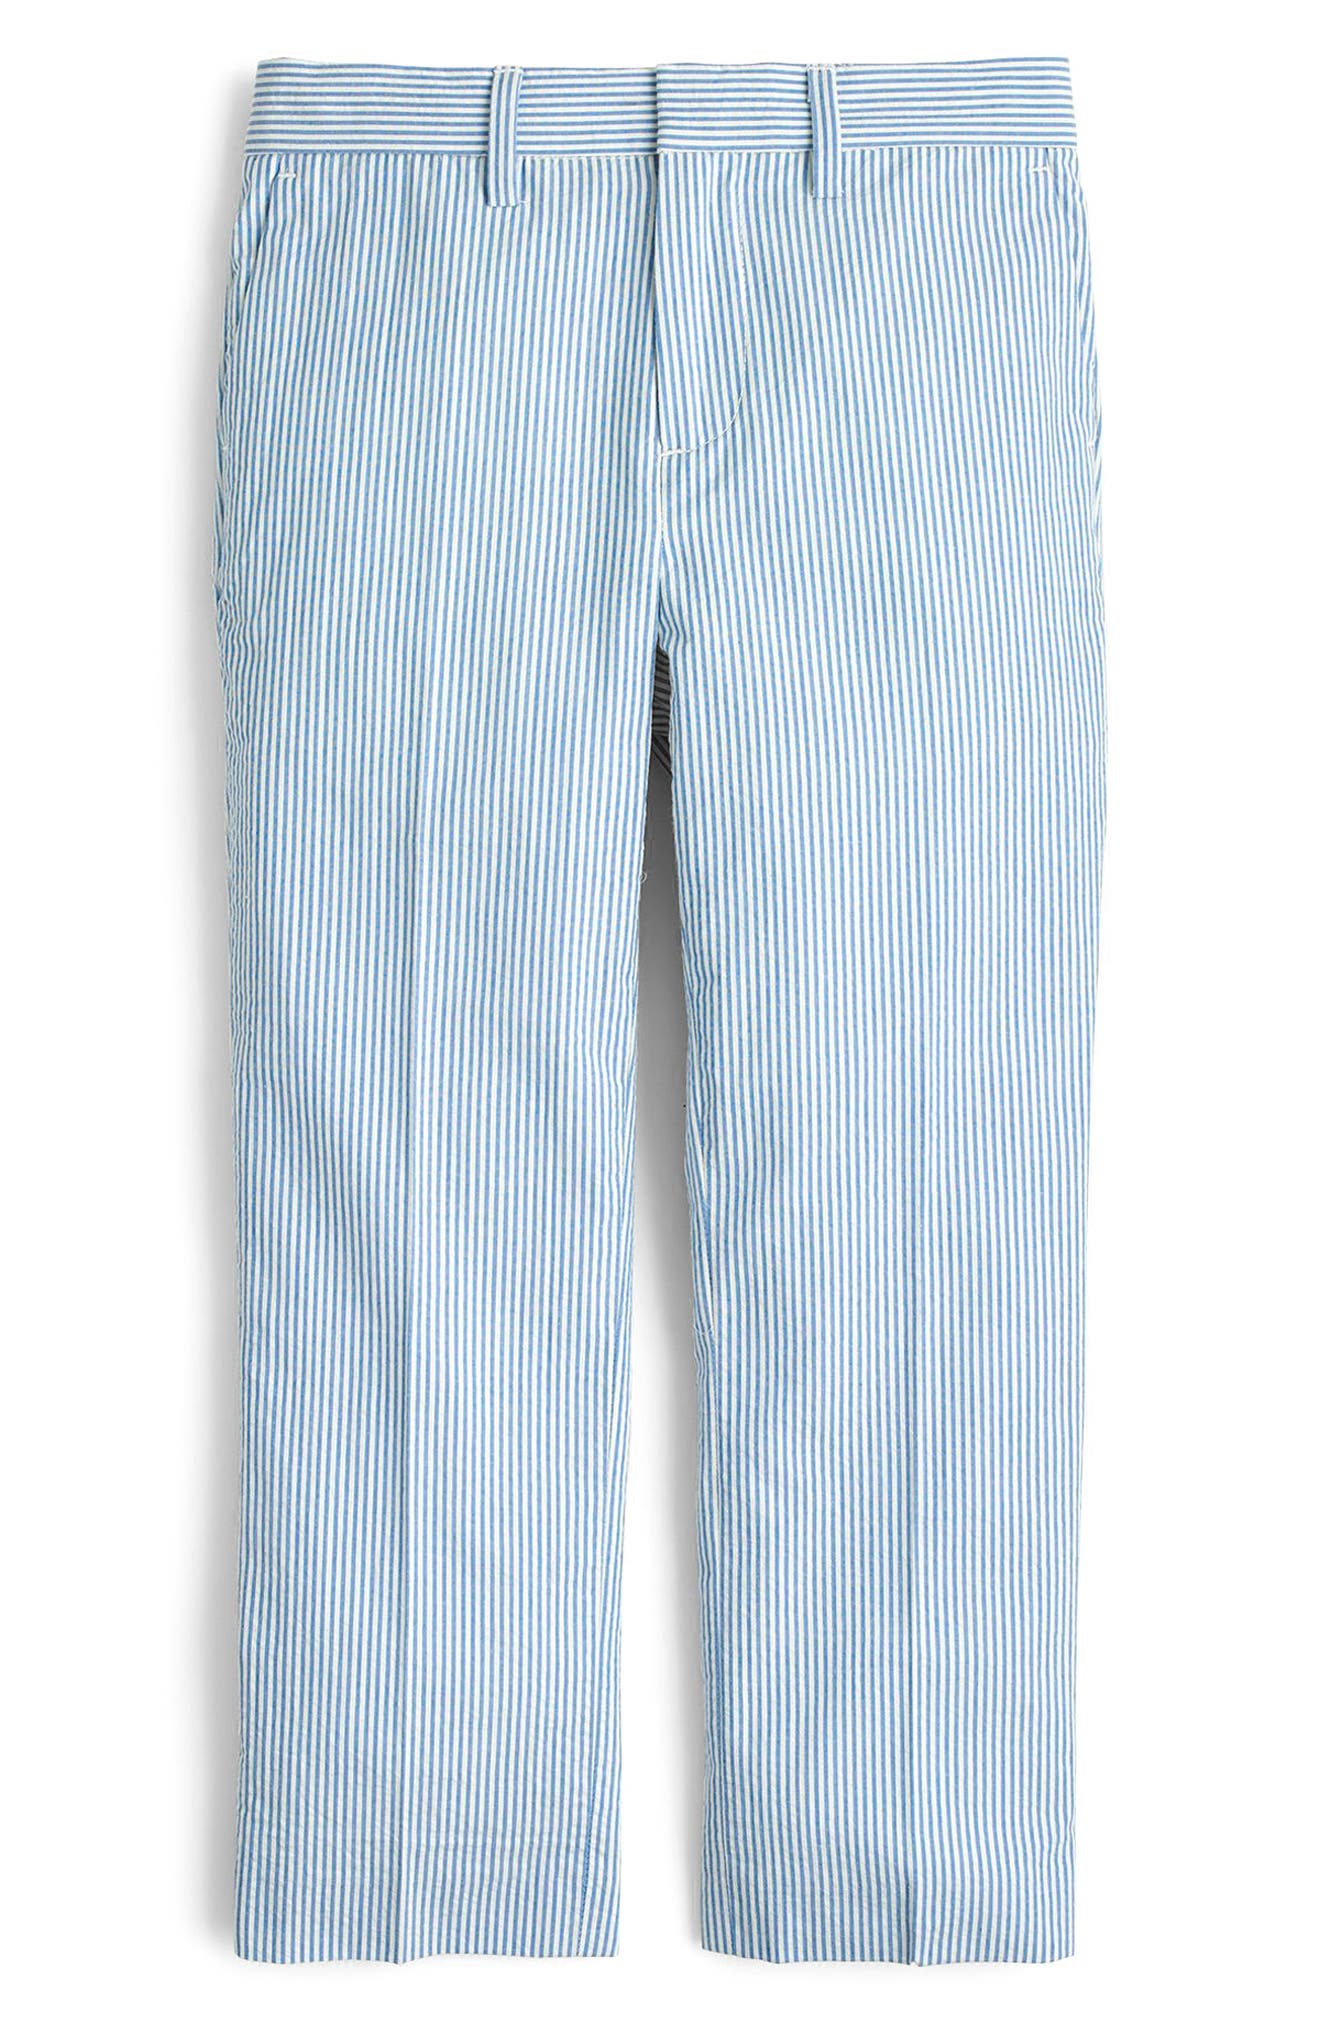 Ludlow Seersucker Pants,                             Main thumbnail 1, color,                             Crisp Azure White